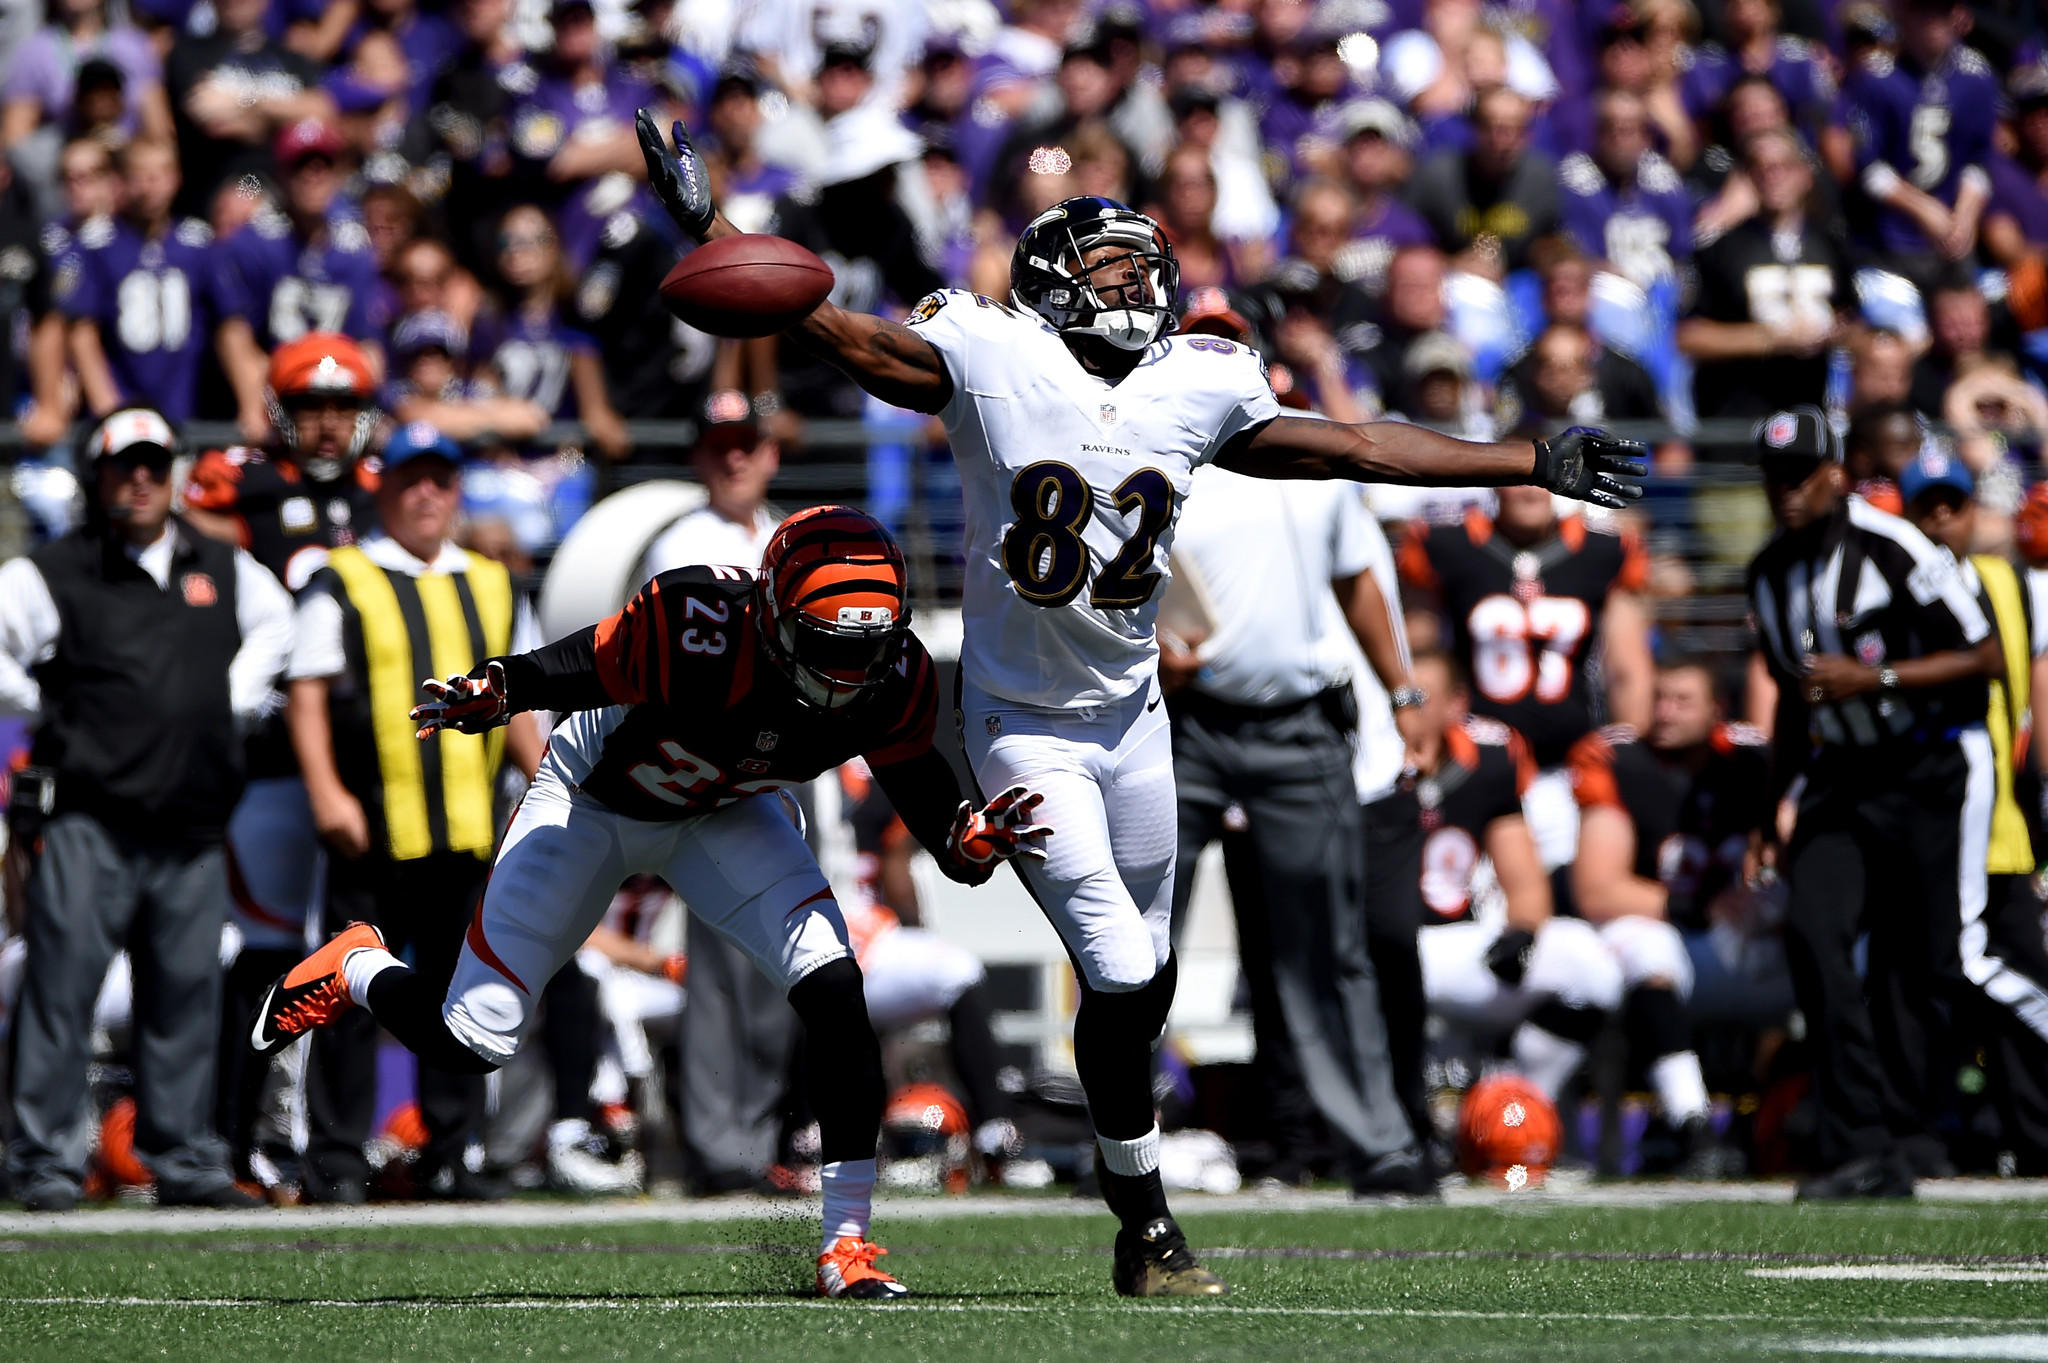 Wide receiver Torrey Smith is unable to make a catch against the Bengals in the Ravens' season-opening loss.